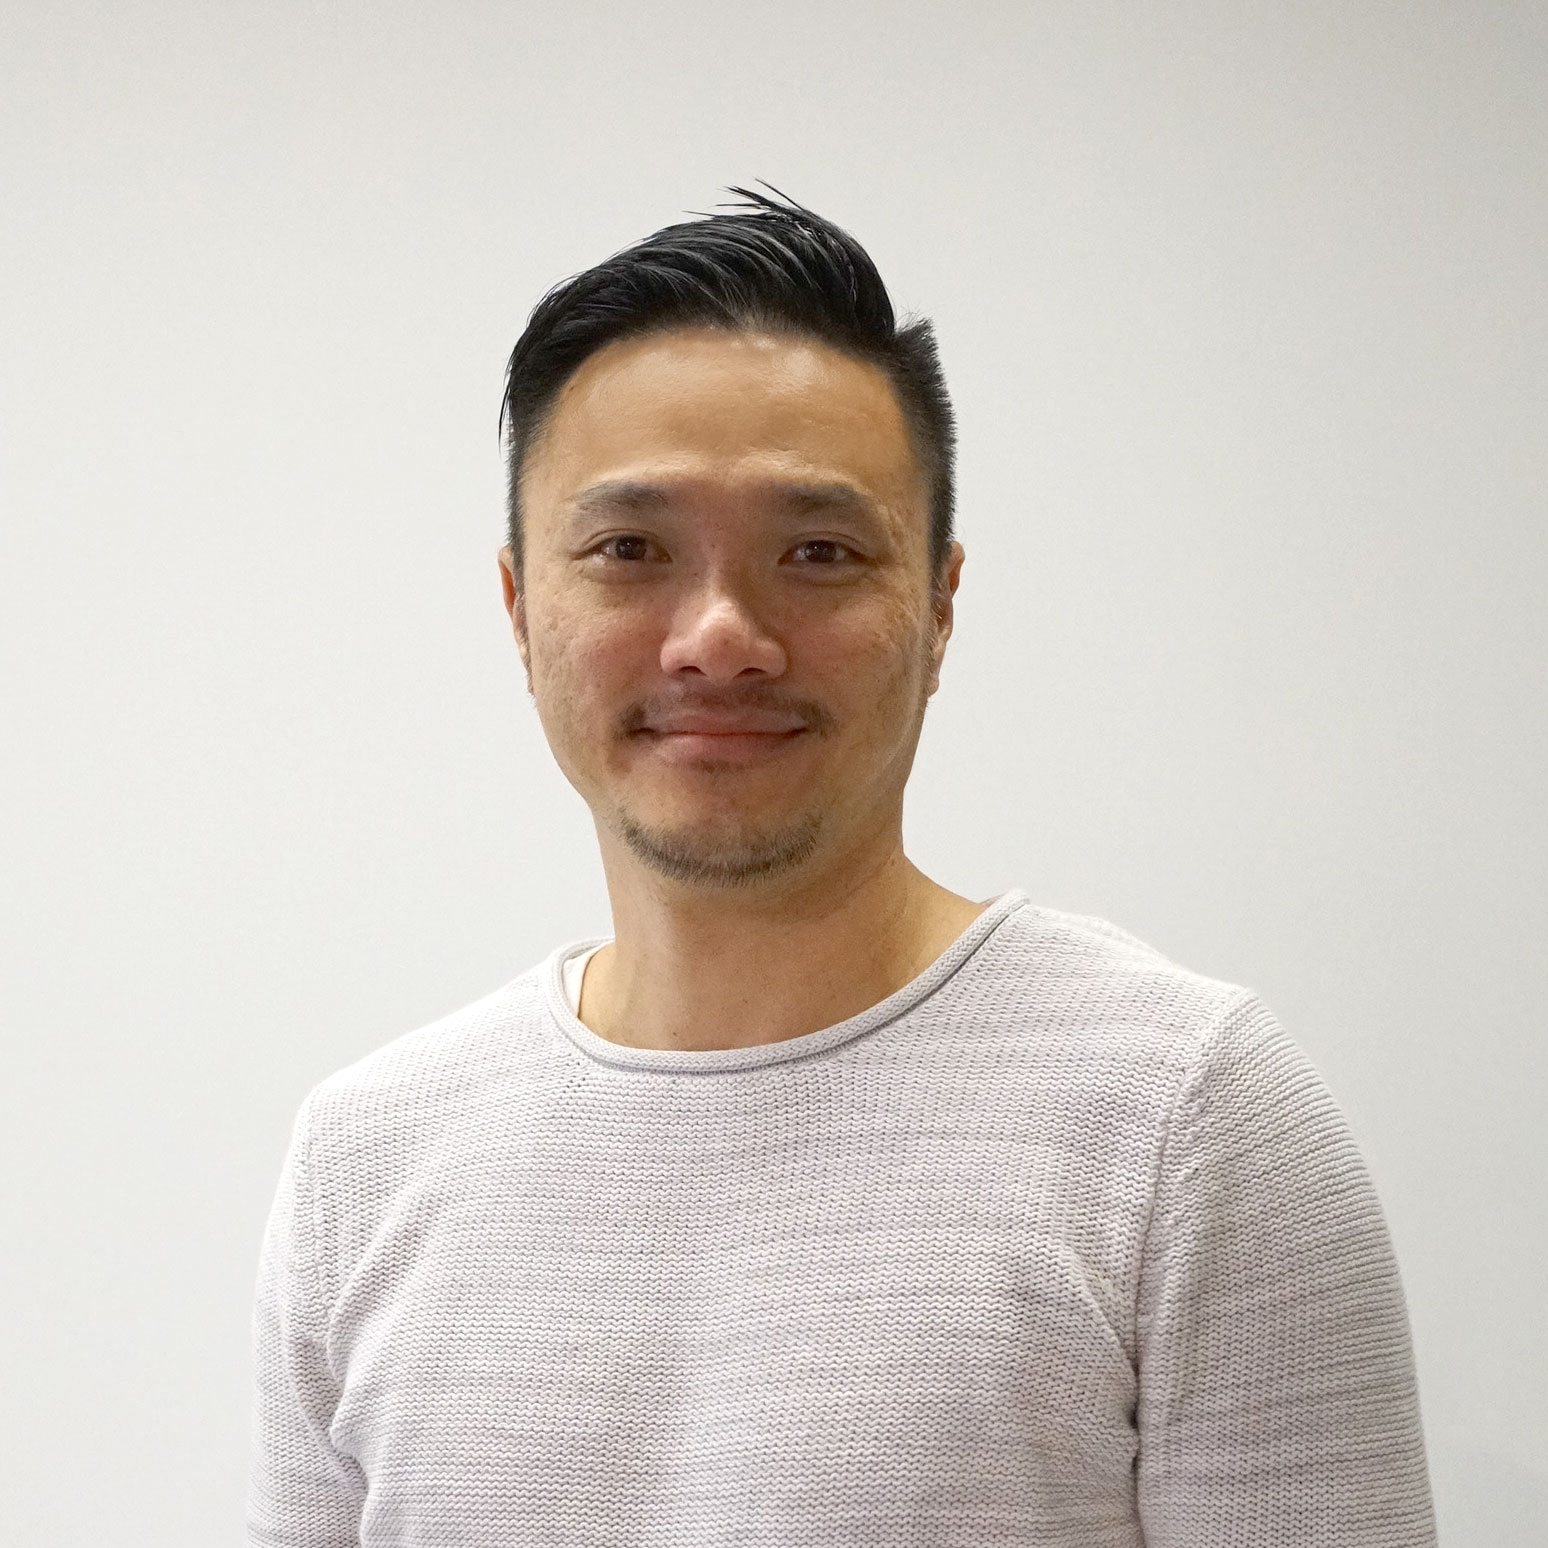 Ethan chong, CPO - 20+ years of experience in consumer / B2B enterprise product strategies, SaaS product lines, and leading engineering teams for companies such as Accenture, IBM and GE Digital.